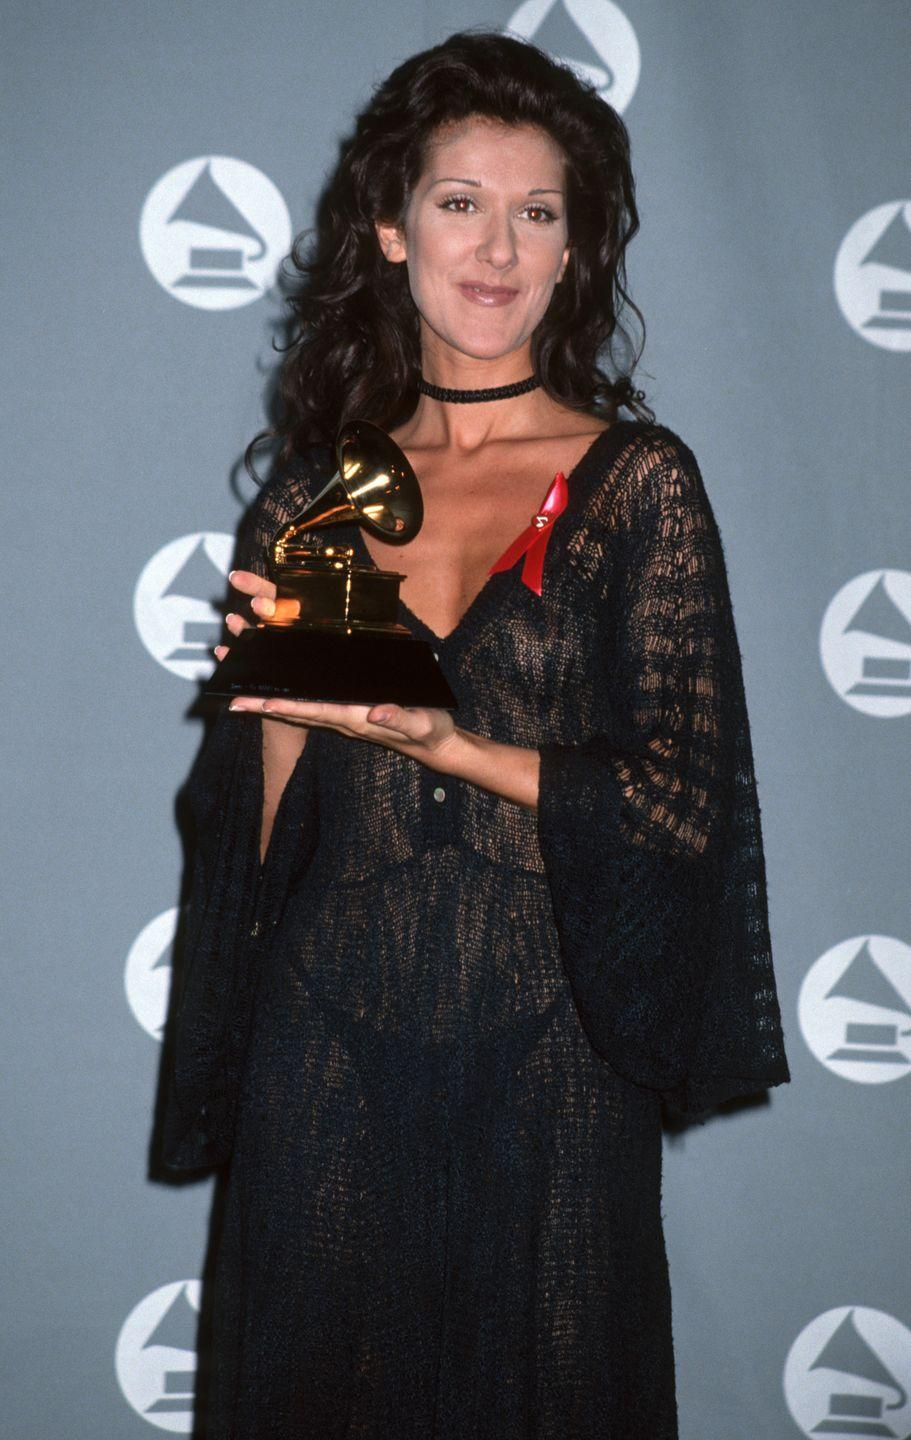 <p>The singer really went for it in a completely sheer black gown that showed off nothing but a black thong underneath at the Grammys. In true '90s fashion, she accessorized the look with a black choker. </p>